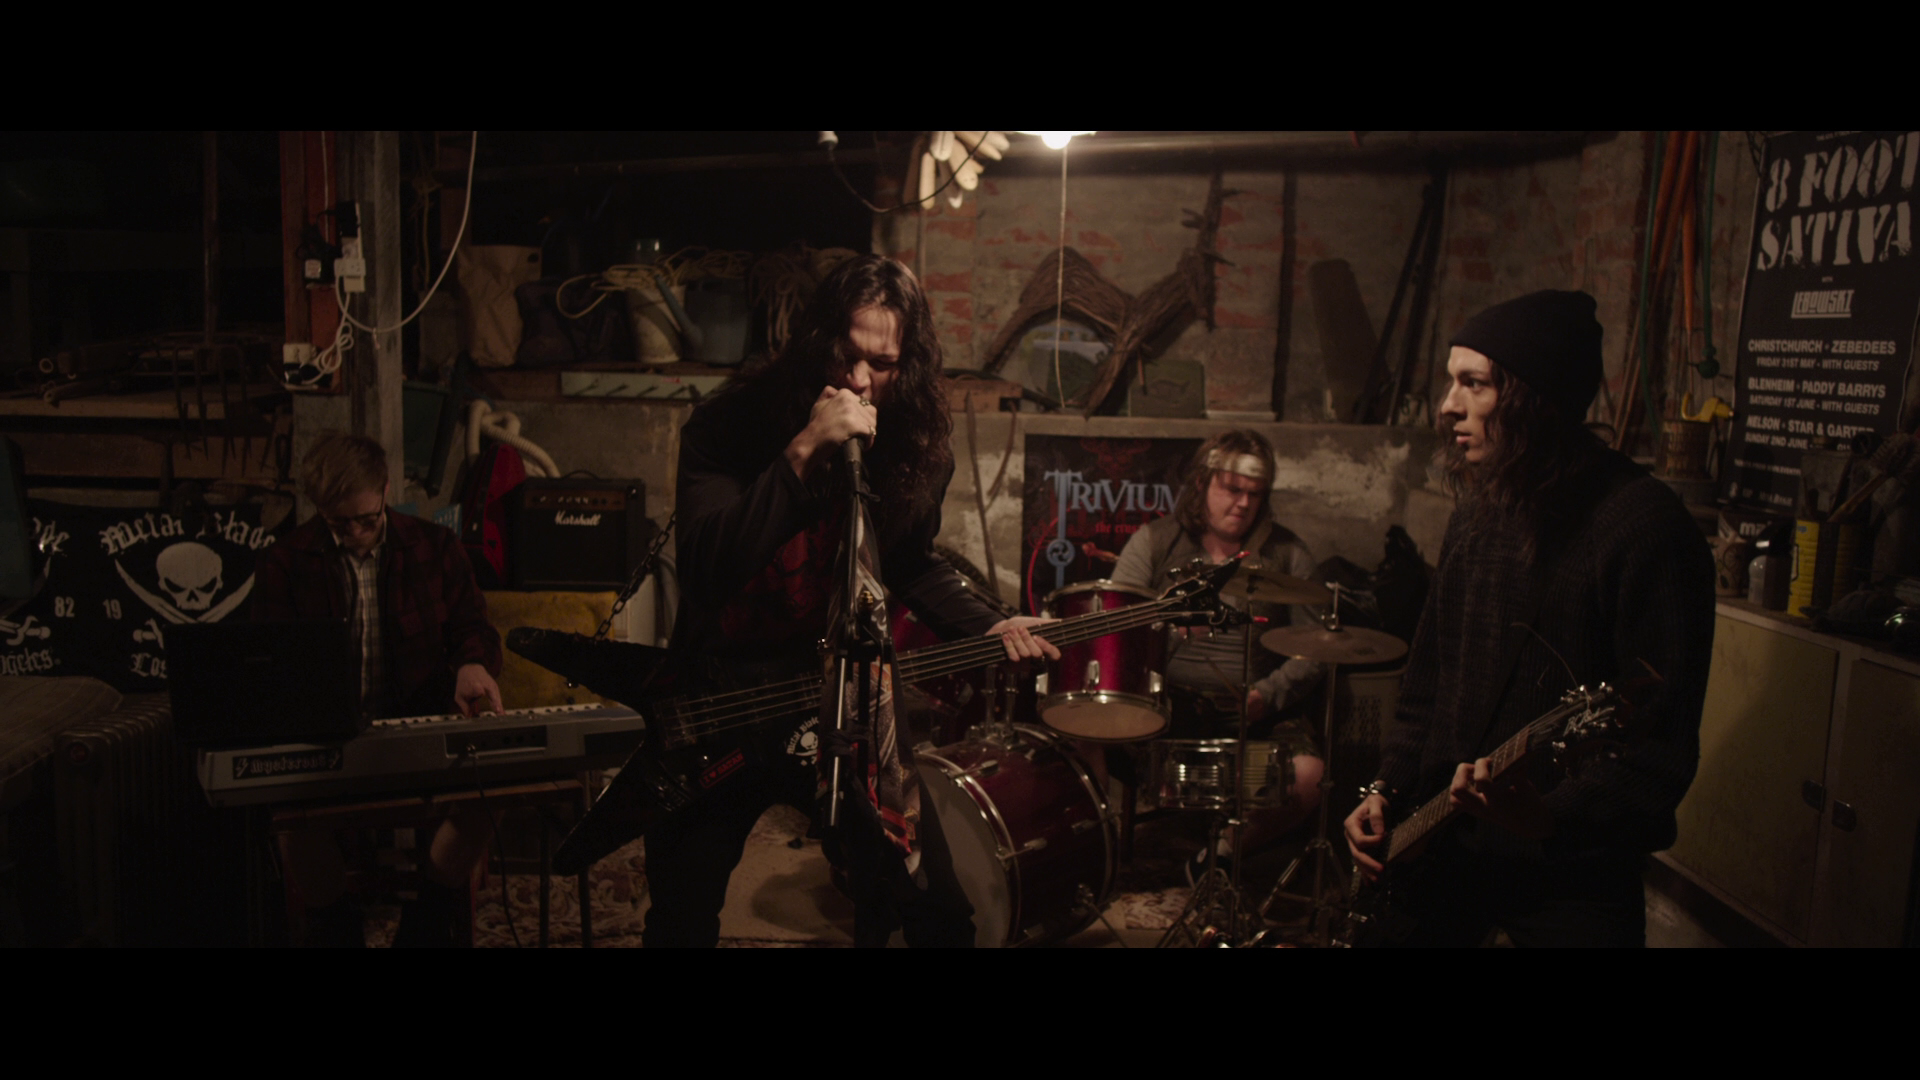 Deathgasm is New Zealand's Return to its Gory Horror Comedy Roots